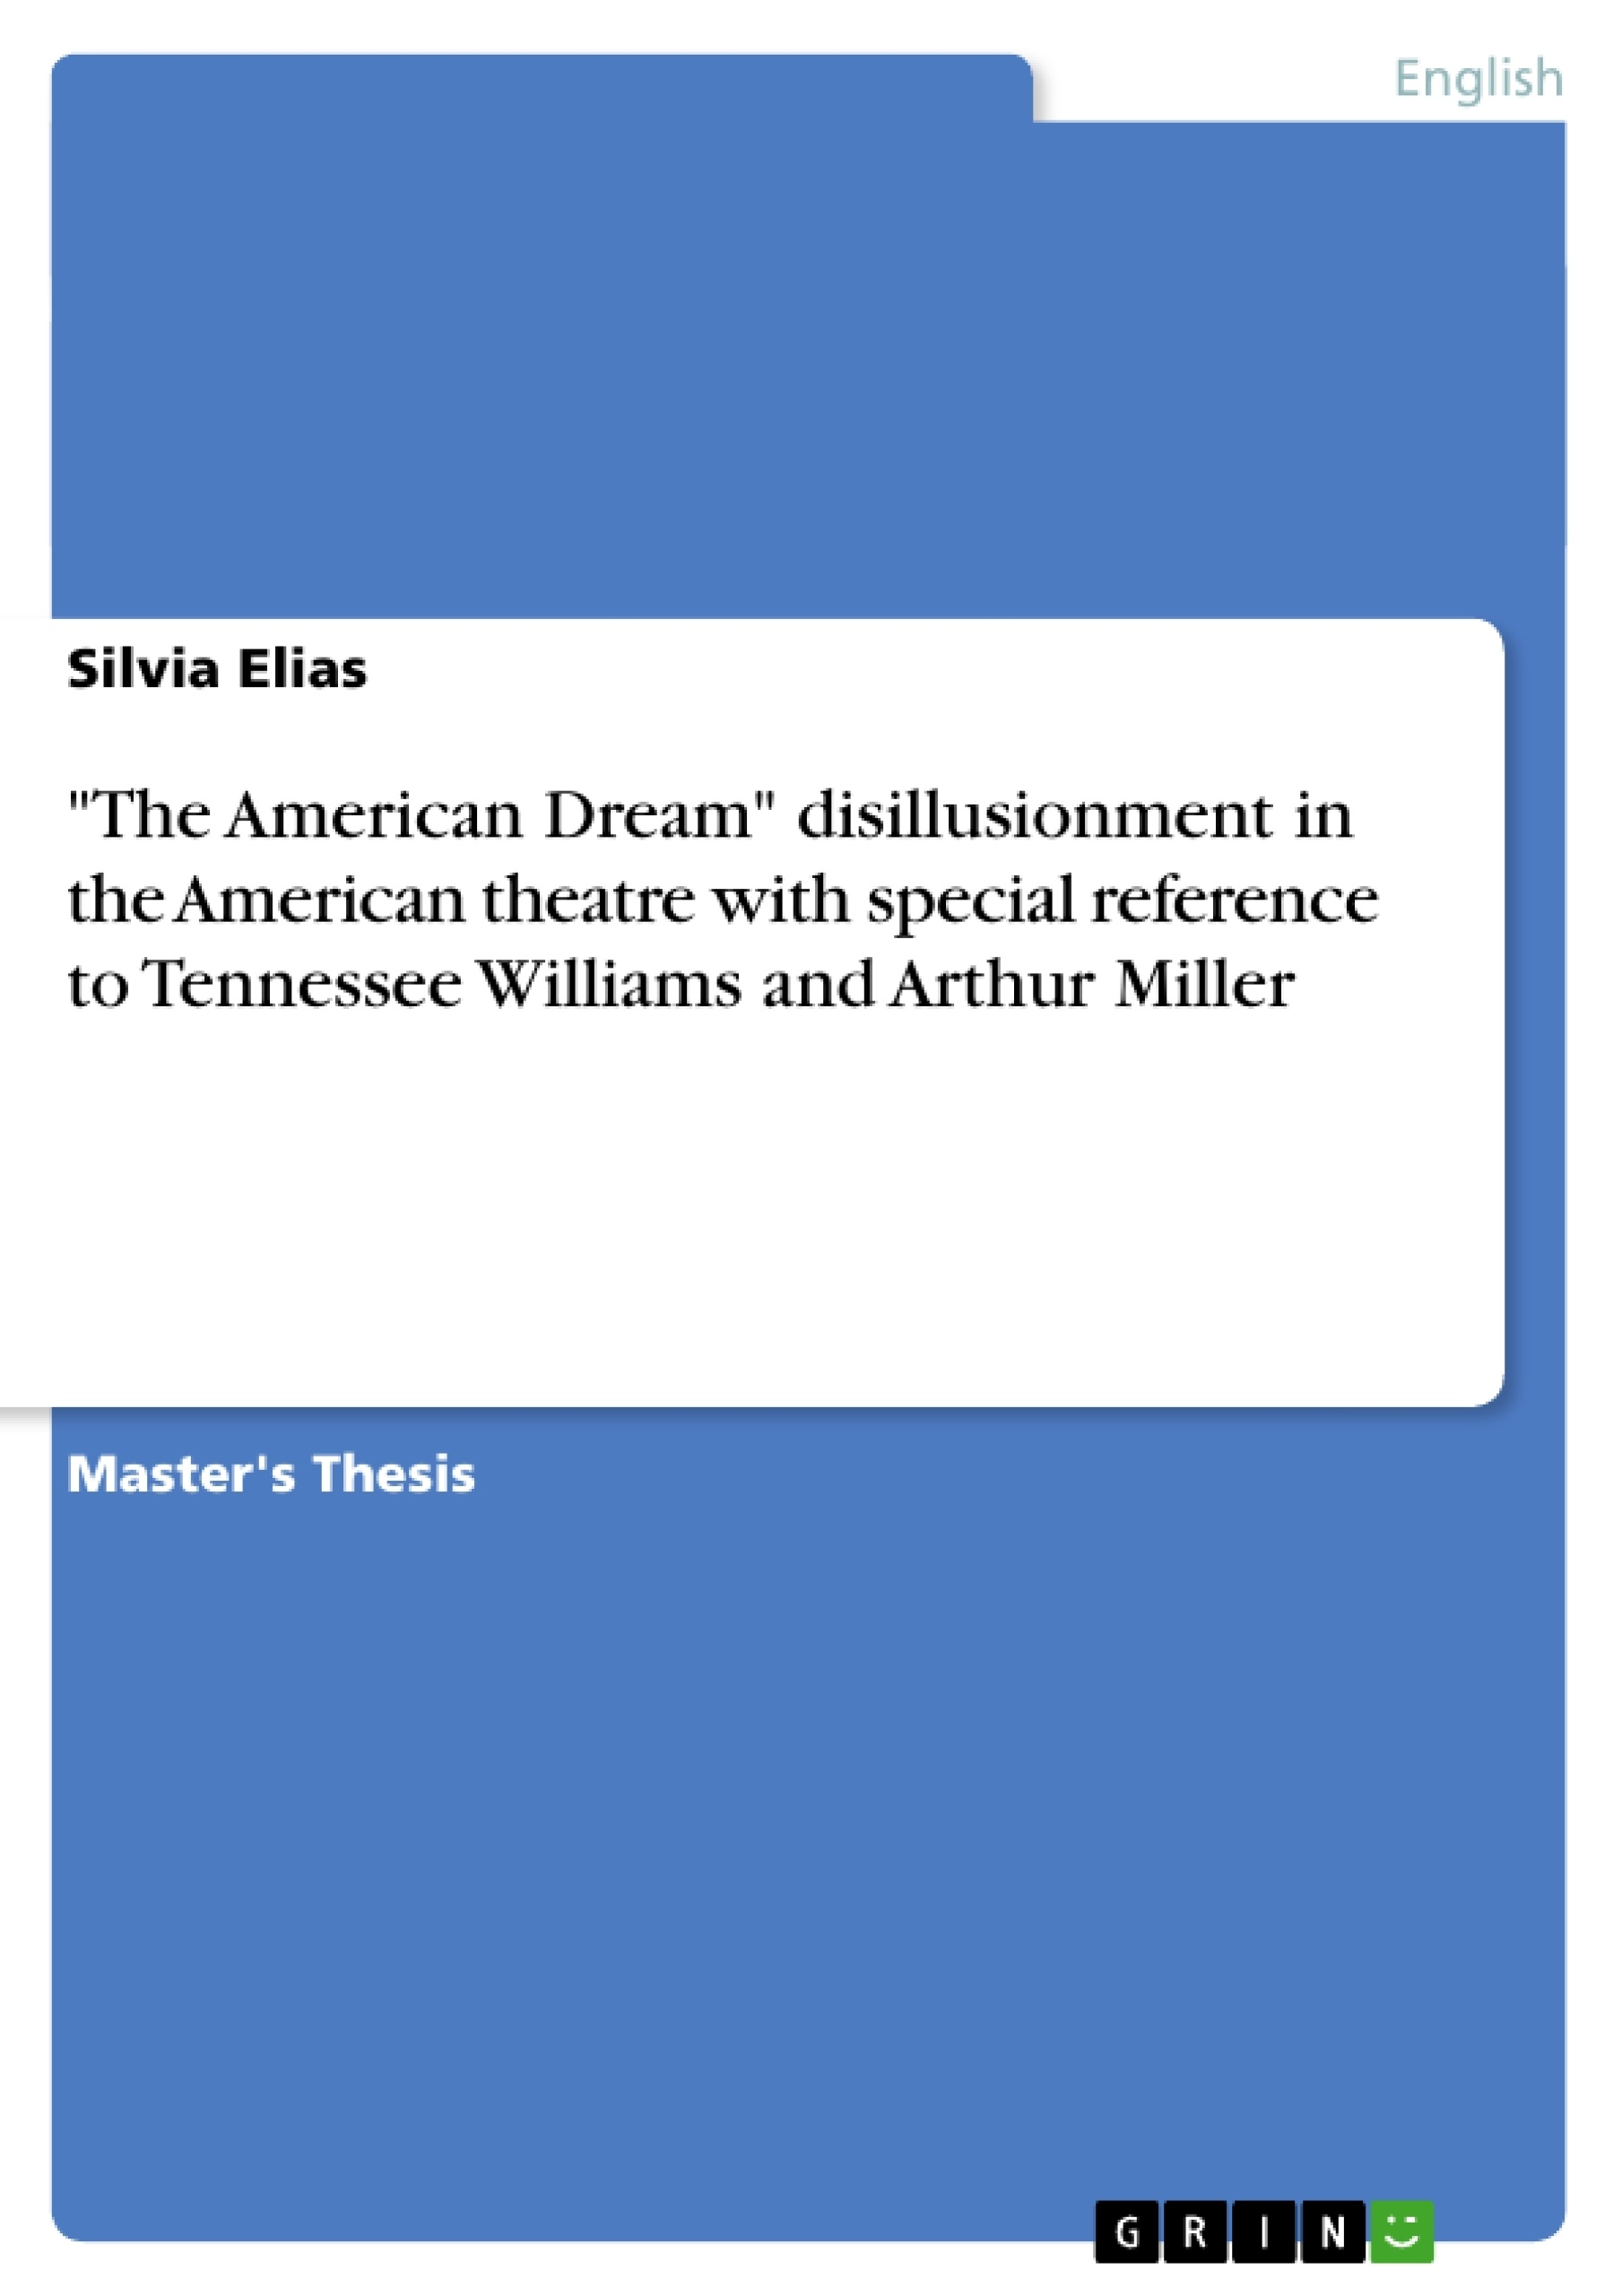 the american dream disillusionment in the american theatre  upload your own papers earn money and win an iphone x